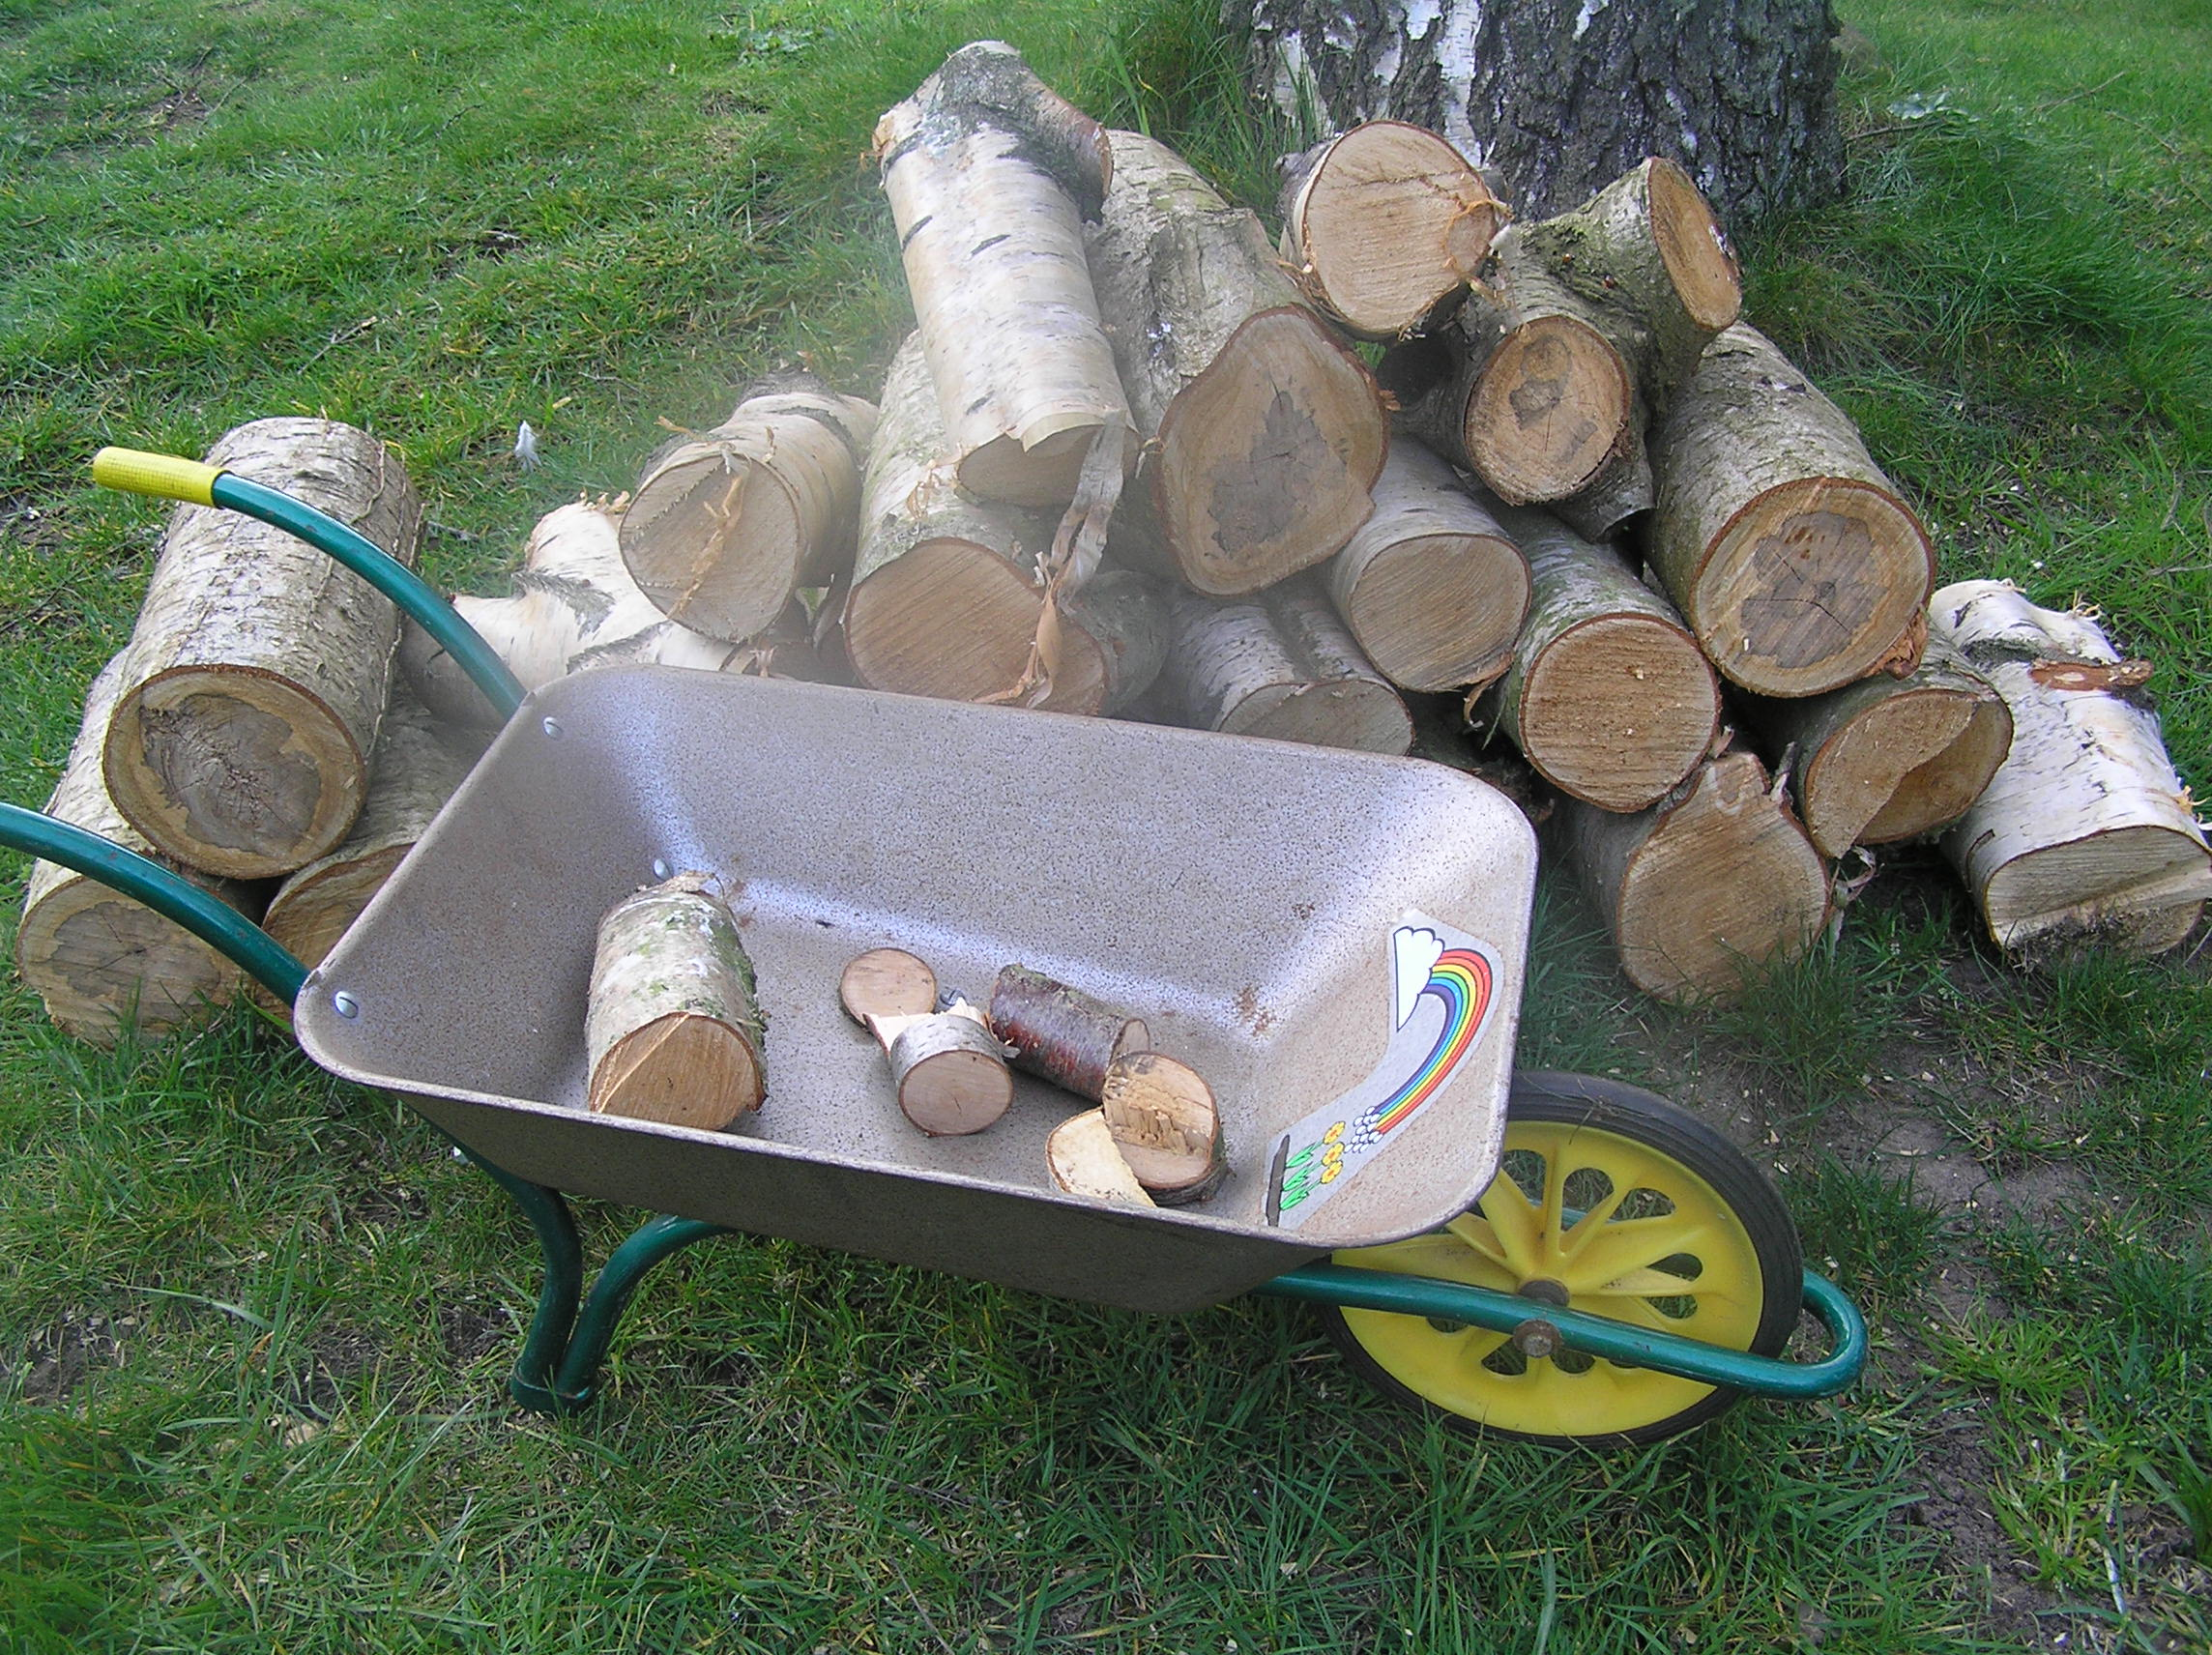 A child's wheelbarrow, half full of logs, is pictured in a garden next to a pile of smaller logs